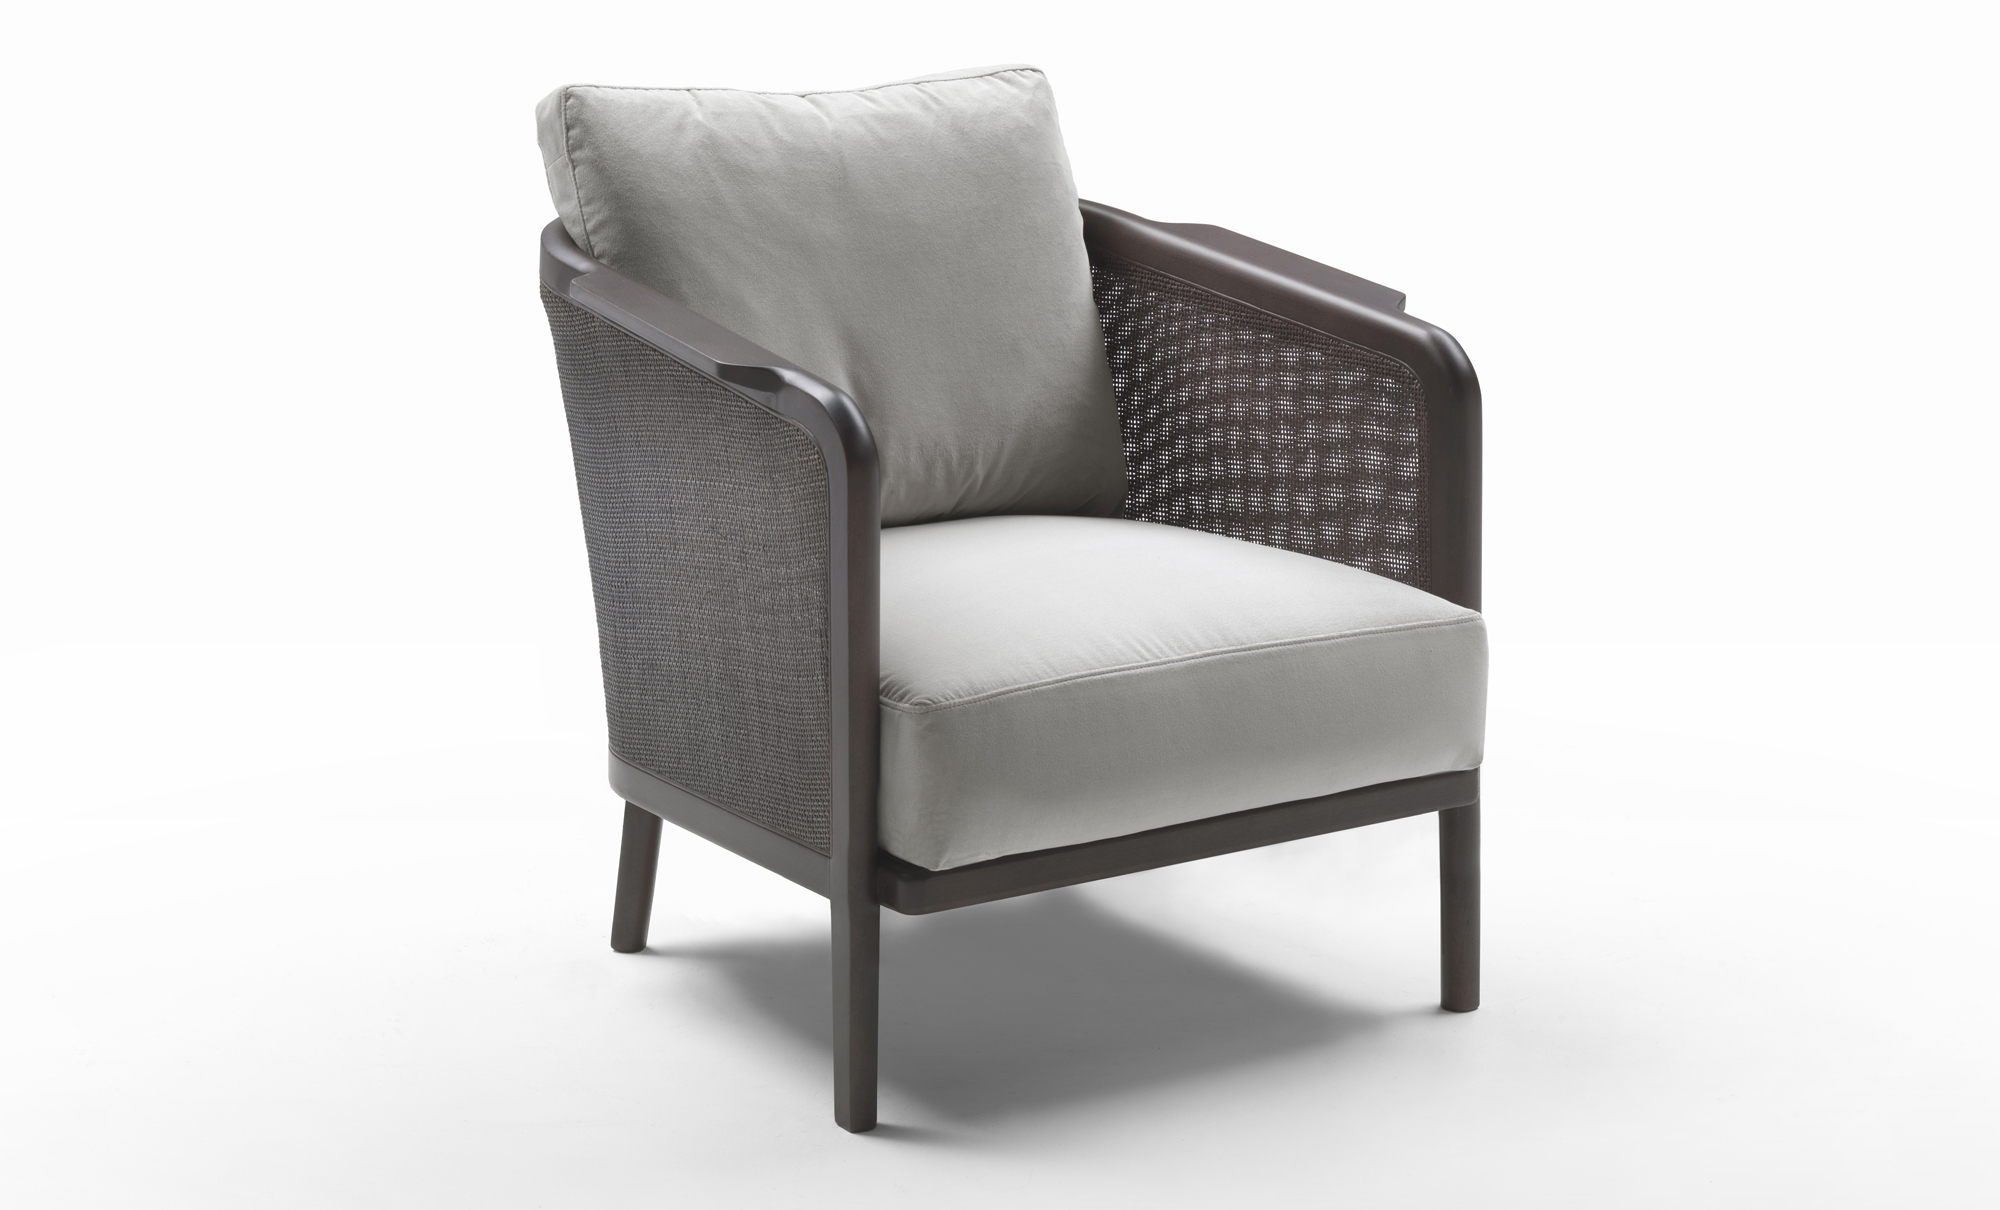 Designer Lounge Chairs & Armchairs Sydney & Melbourne Fanuli